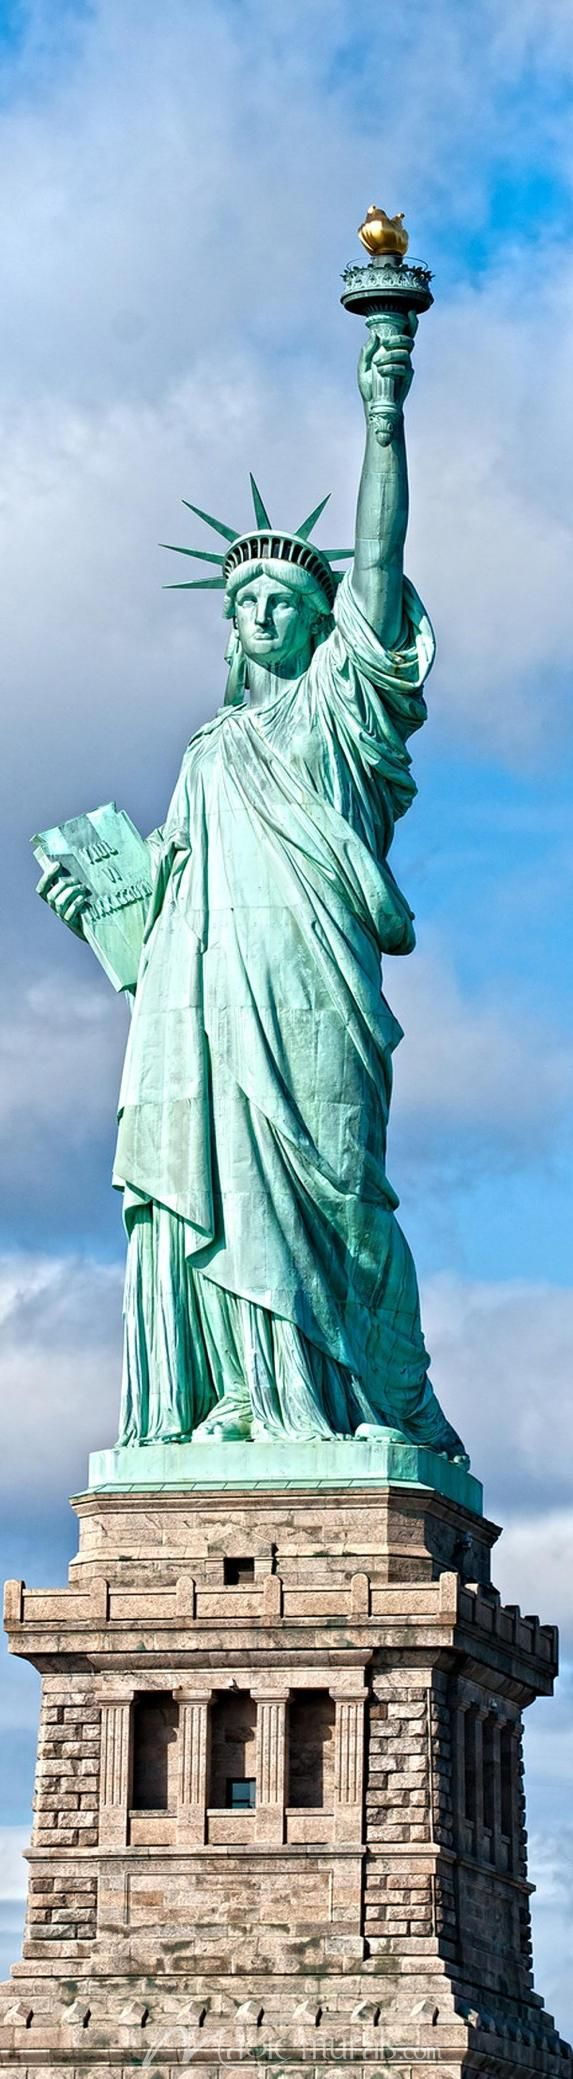 Statue of liberty is a monument in the u s to represent the freedom and liberty